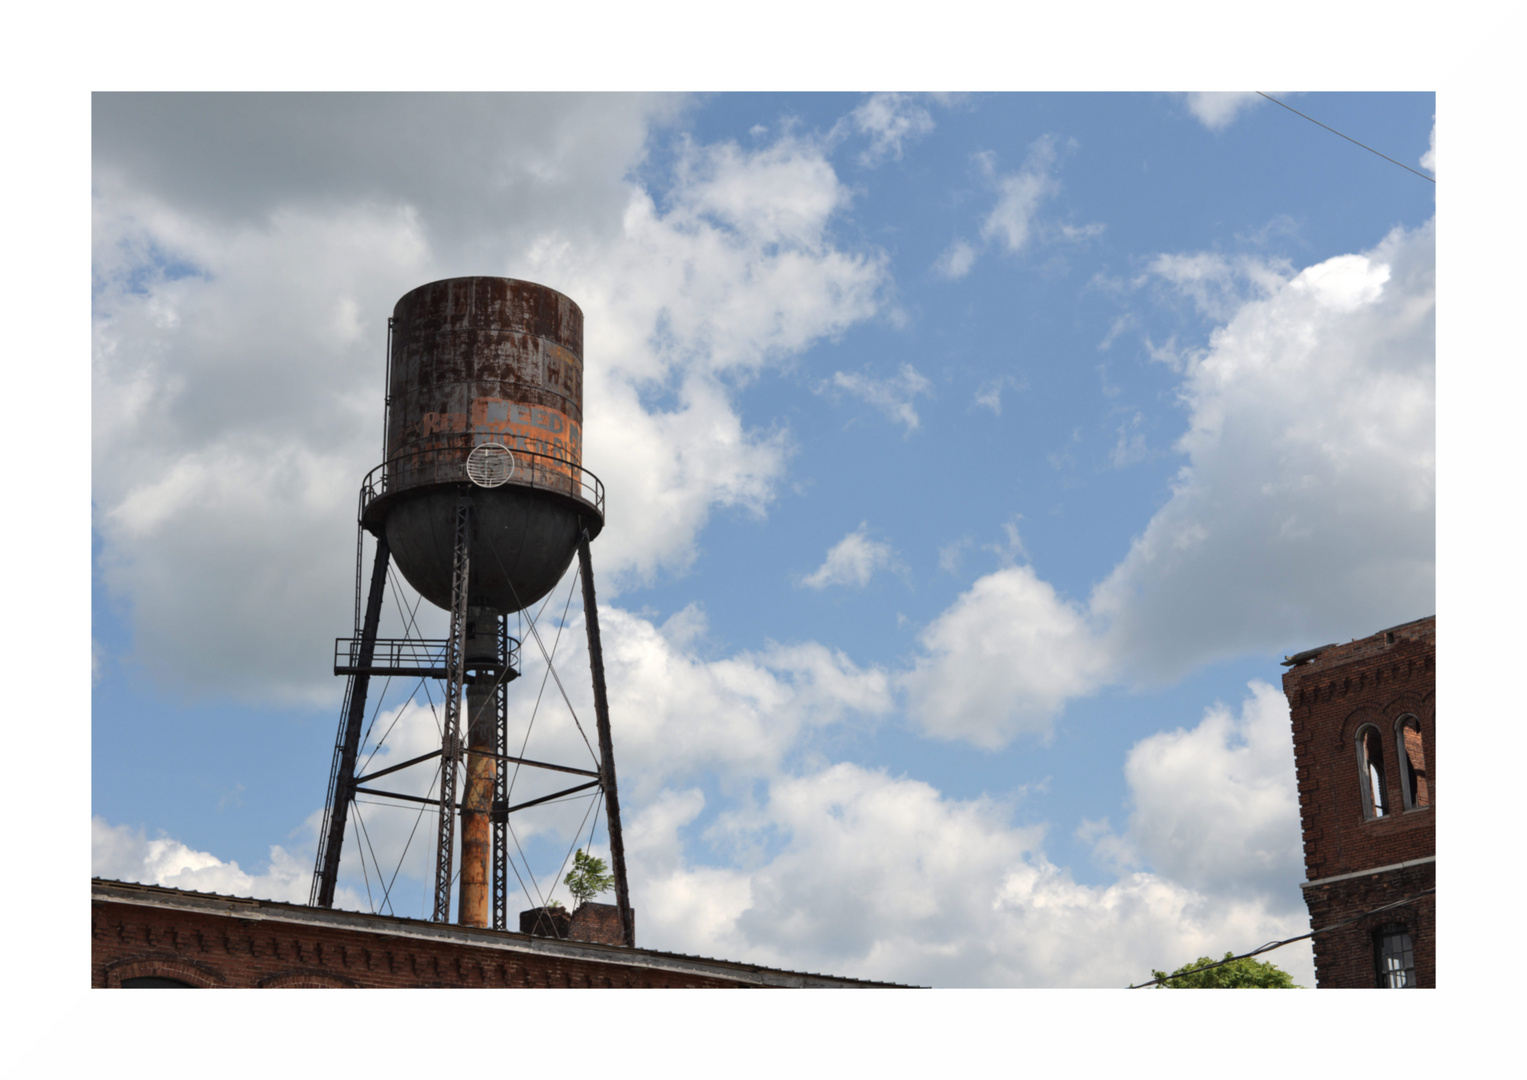 Water Tower in Nashvile